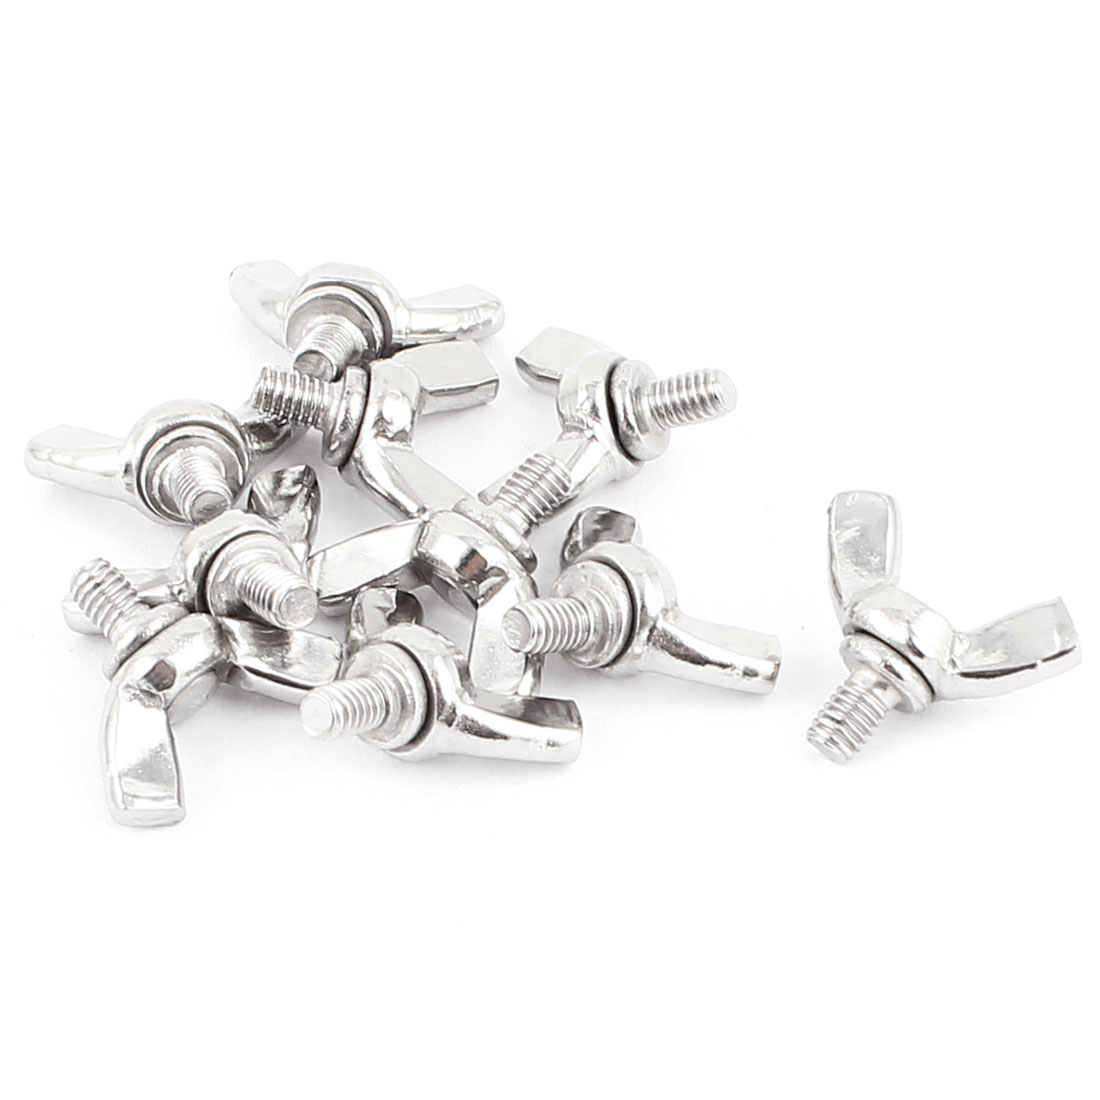 M4 Male Thread 0.7mm Pitch Wing Screws Butterfly Bolts Fasteners 10pcs